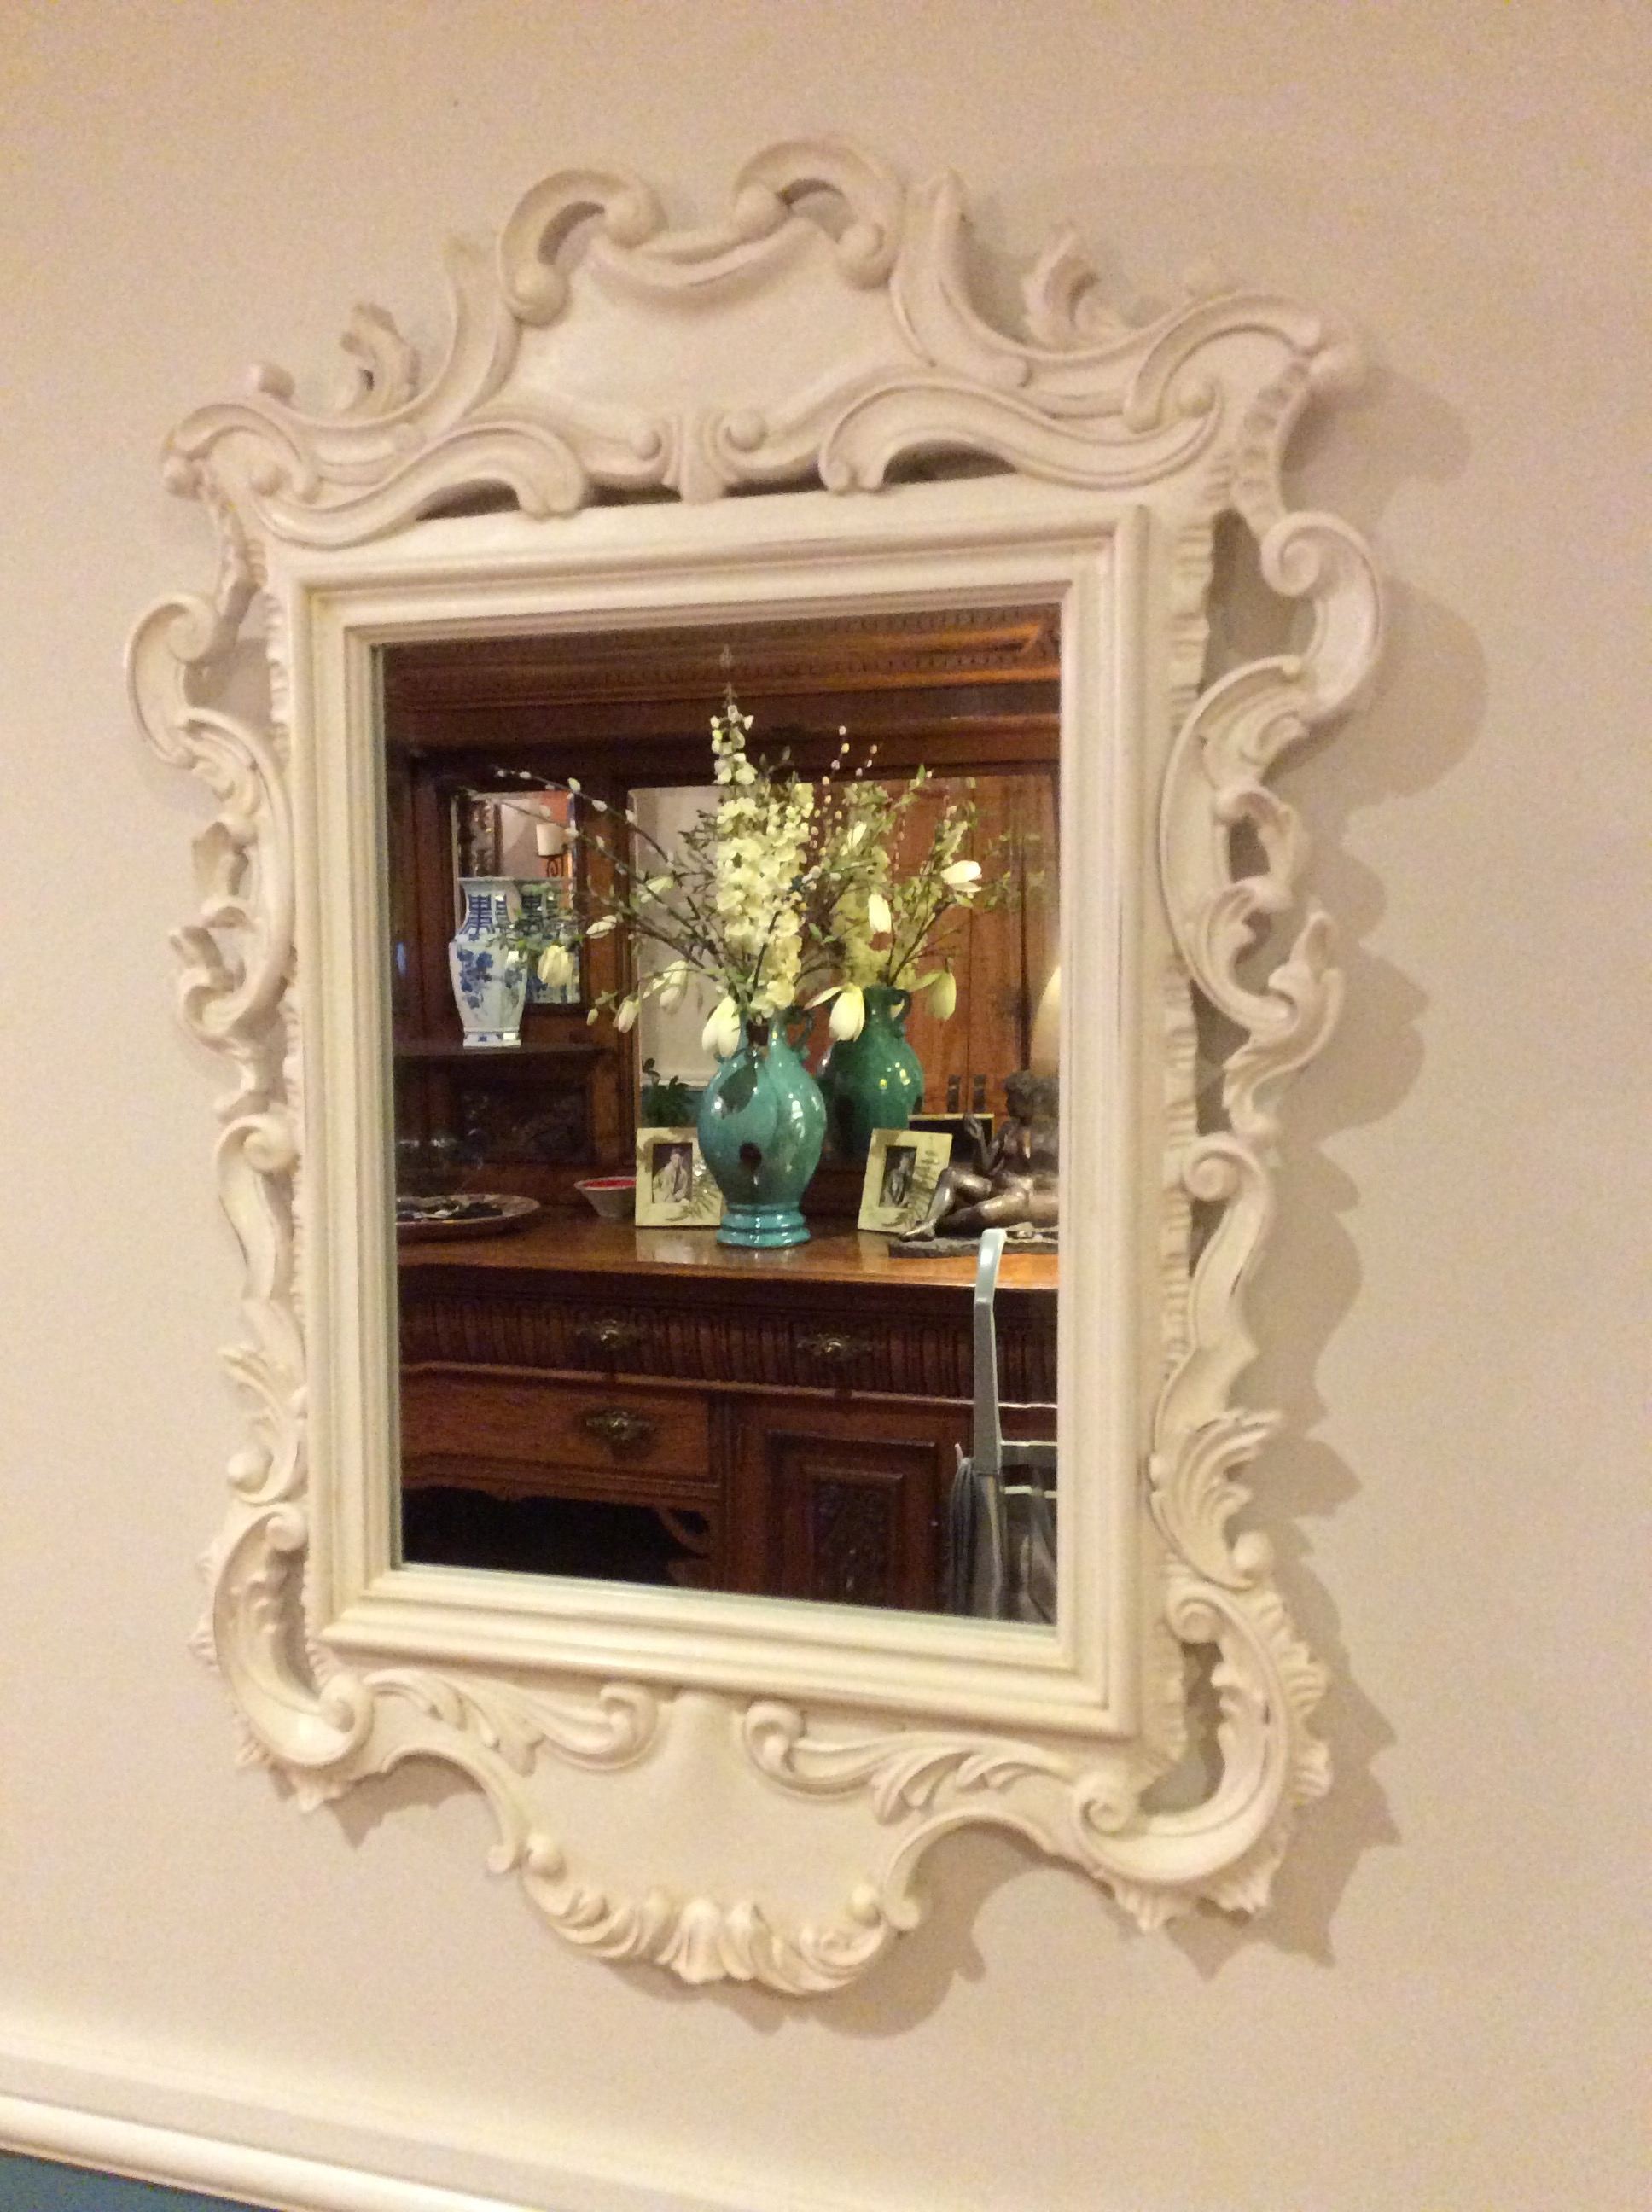 Art Mirrors Sues Vintage Finds In Large White Rococo Mirror (Image 2 of 15)